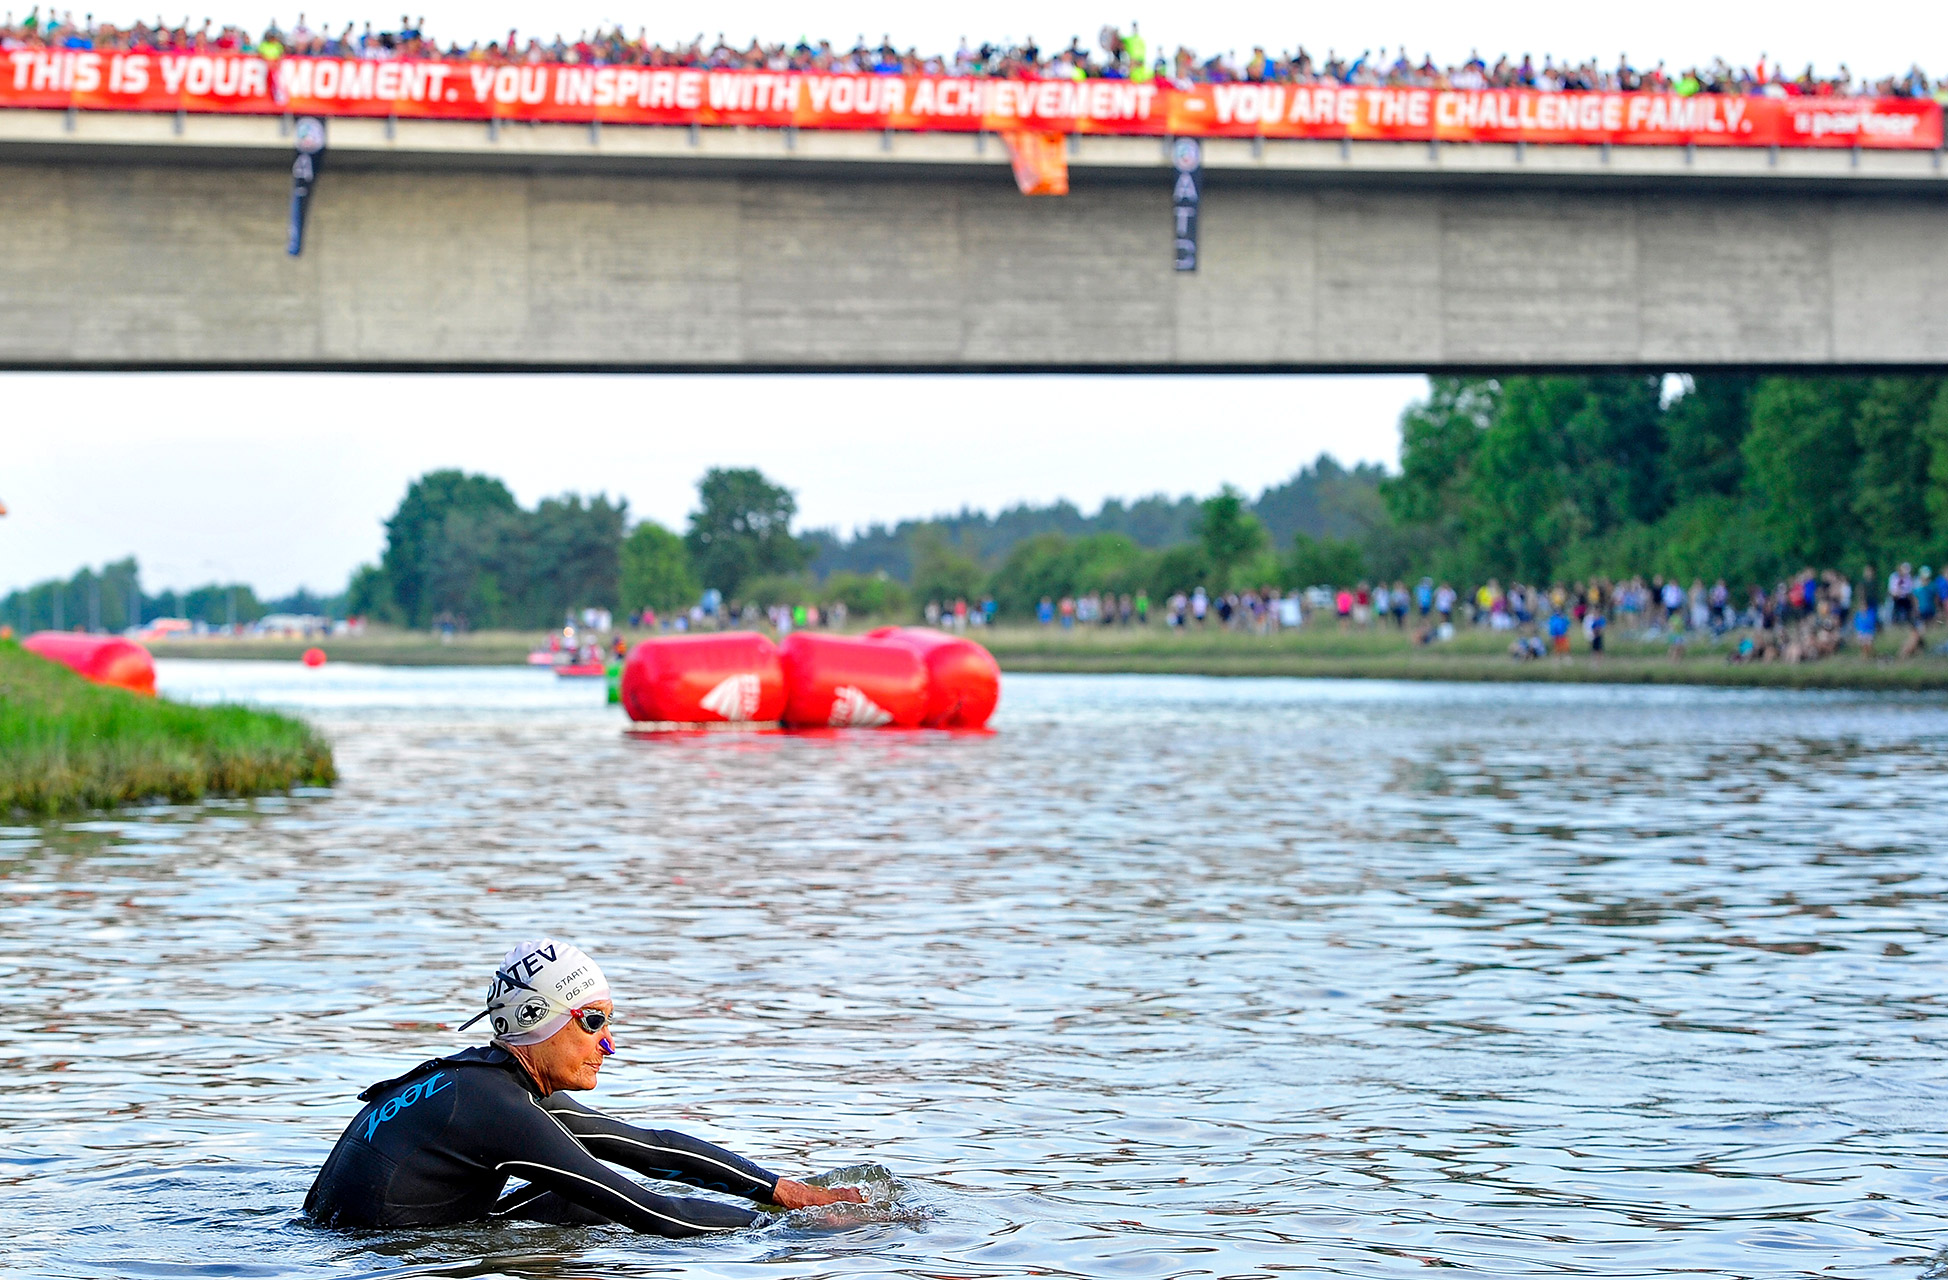 Sister Madonna Buder, a 83-year-old American nun, prepares for the swim start during Challenge Roth in Roth, Germany.